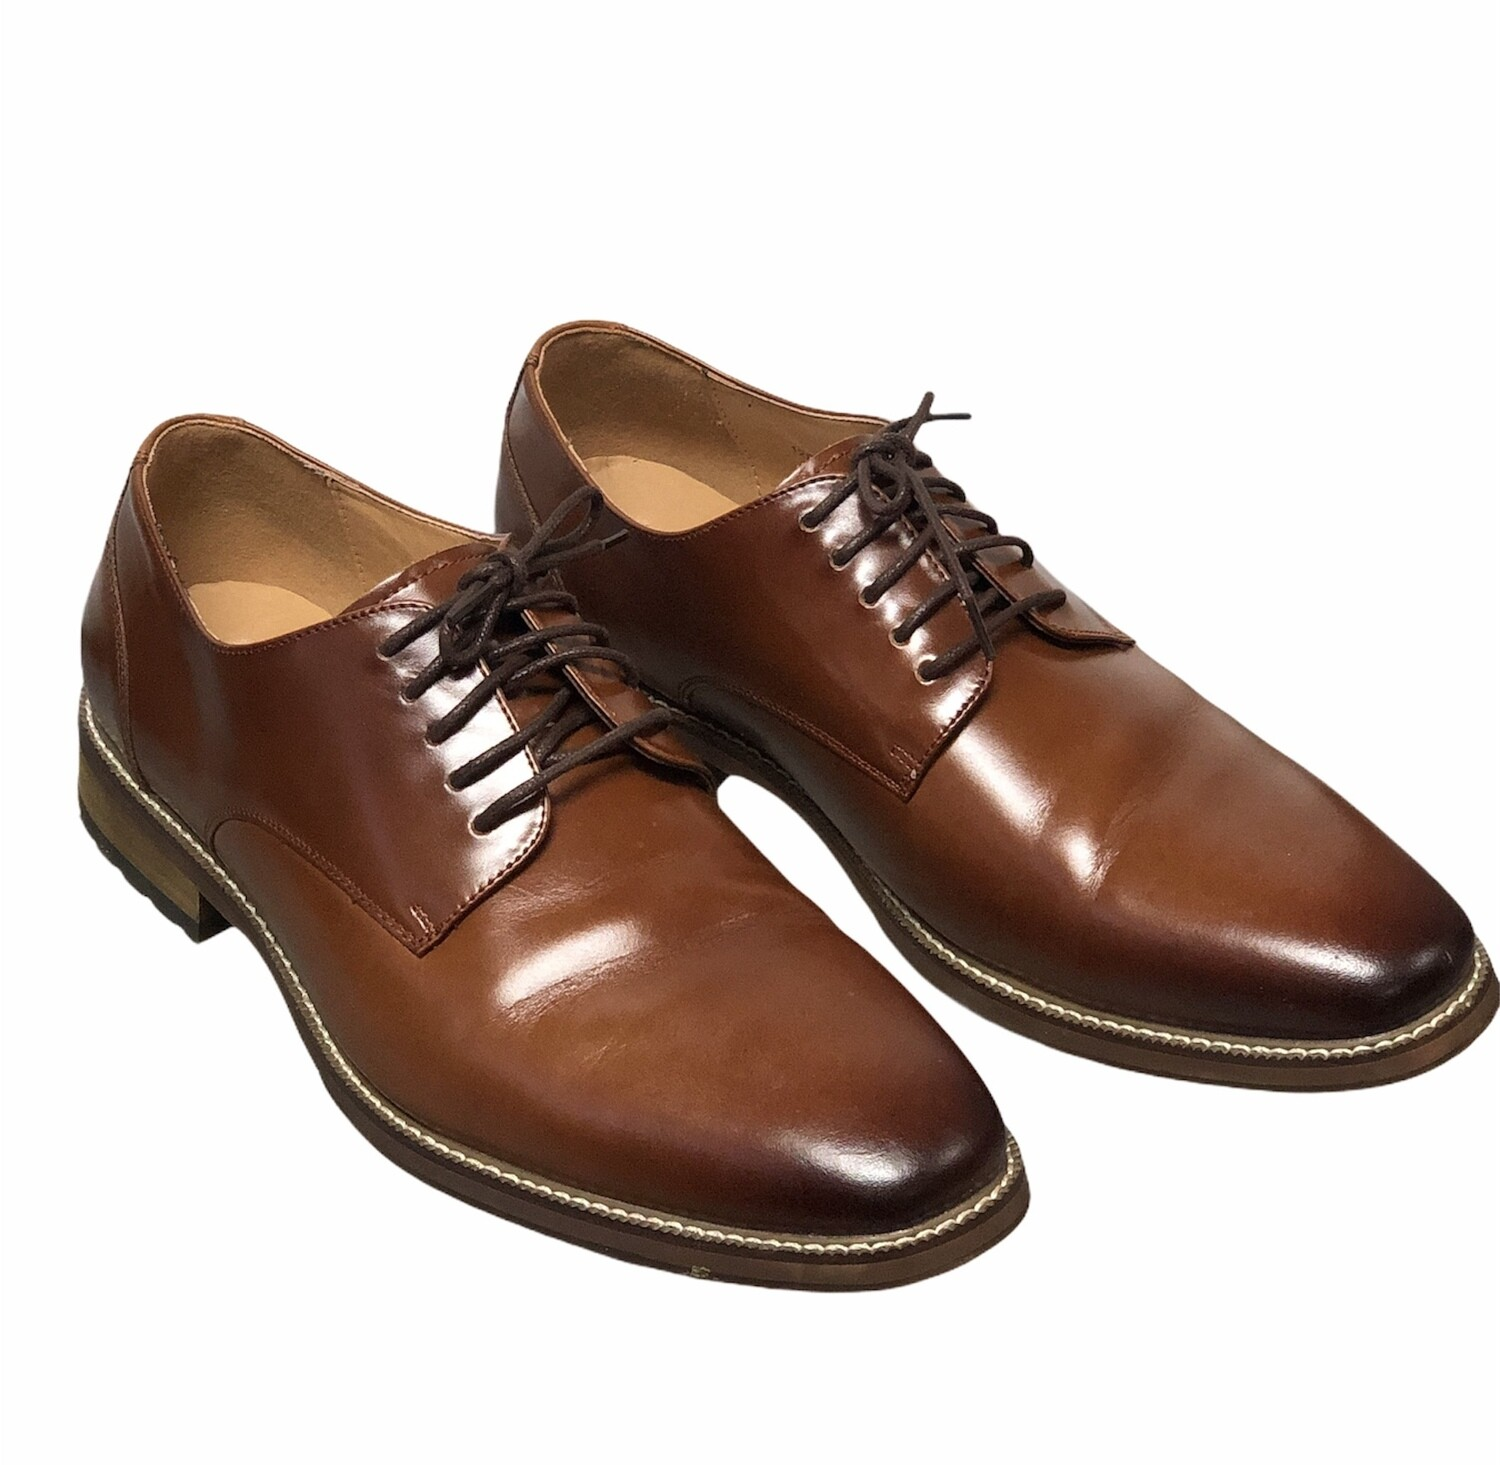 JOSEPH ABBOUD Thorton Plain Toe Lace-Up Oxford shoes 12D $100